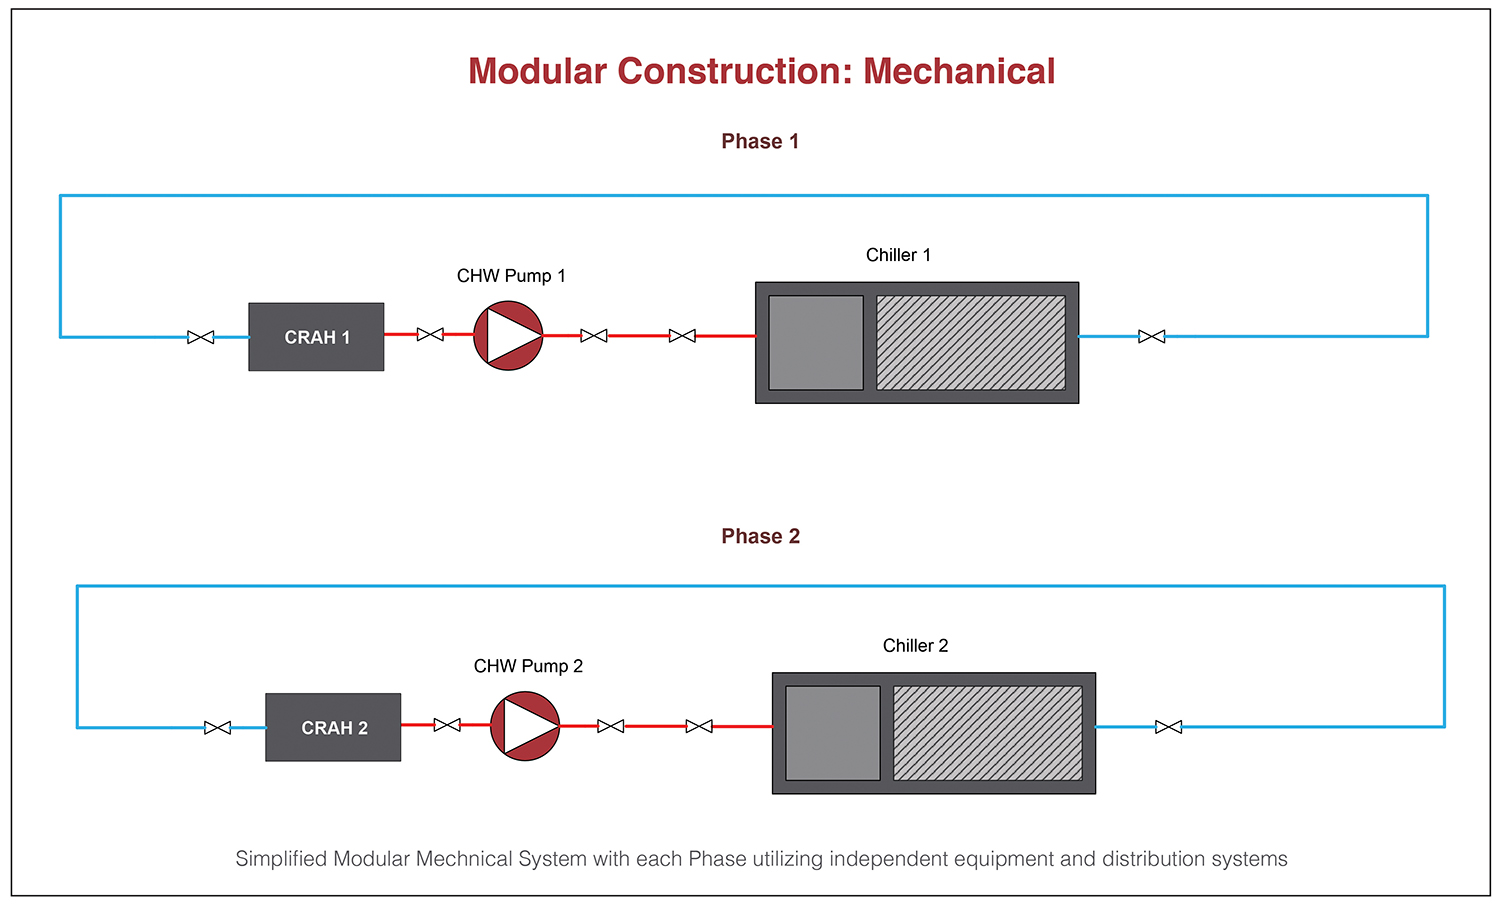 Figure 4. Simplified modular mechanical system with each phase utilizing independent equipment and distribution systems expansions of infrastructure.